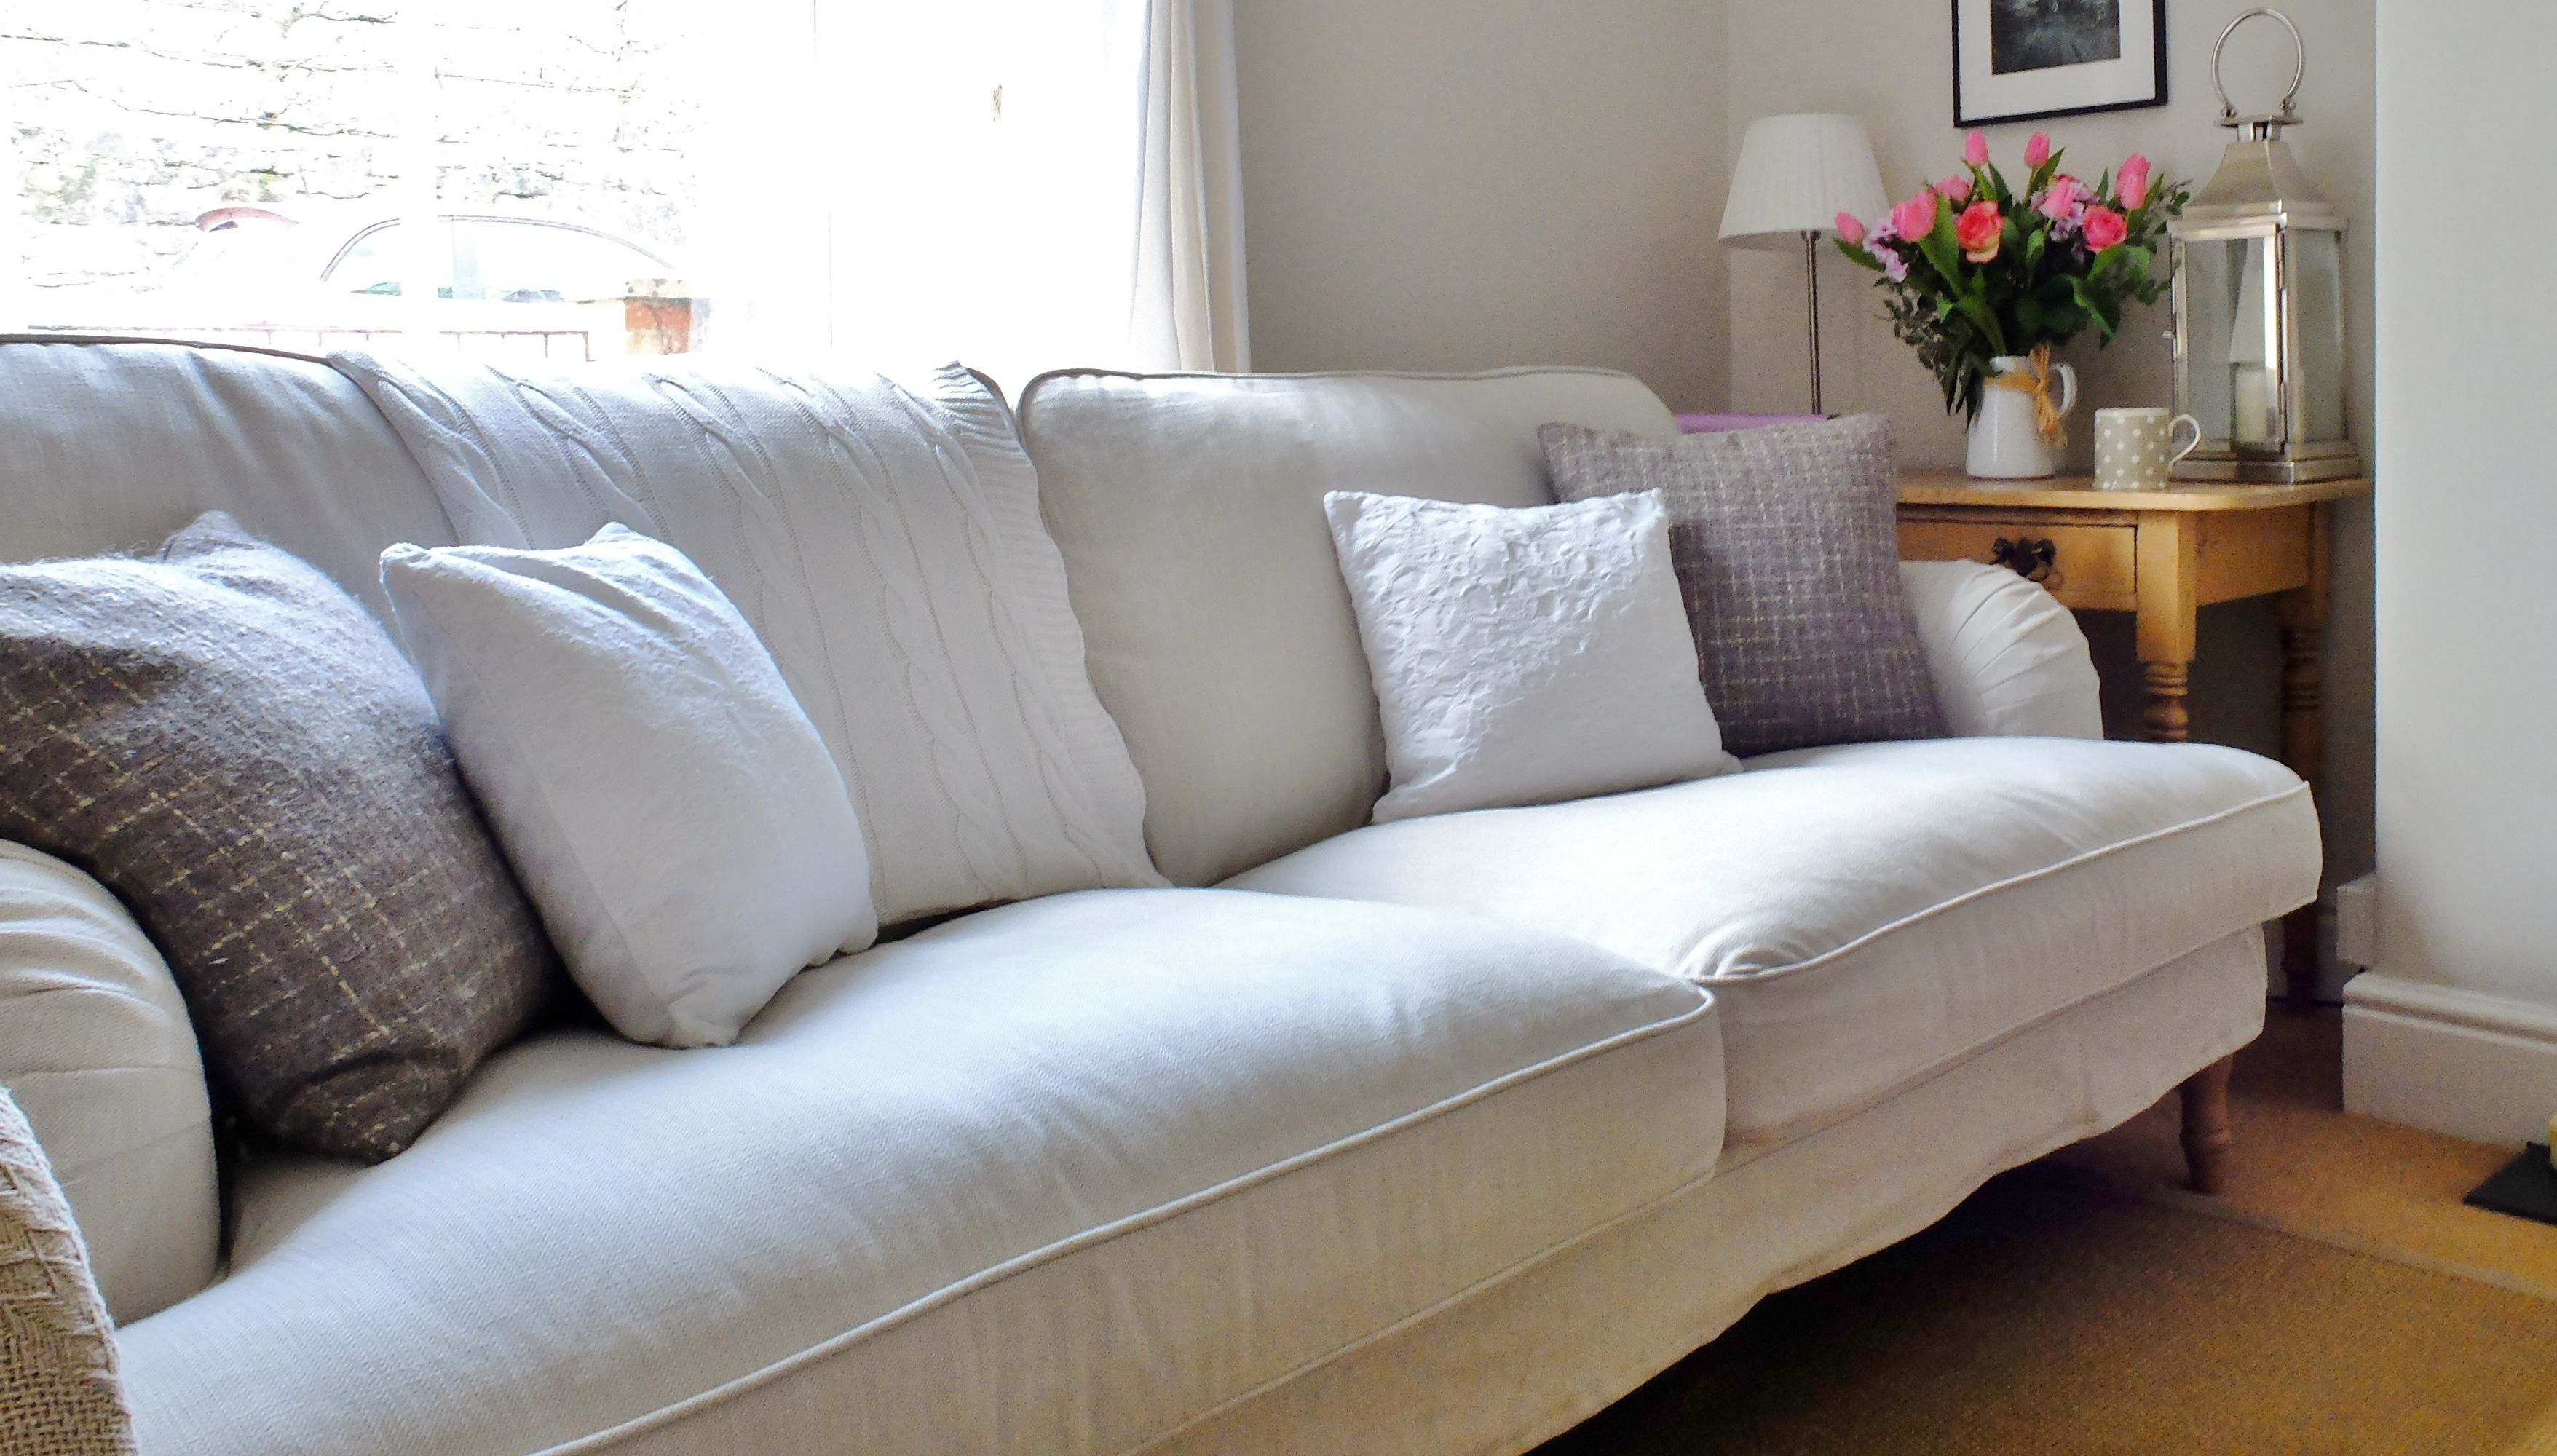 lovely ikea living room | Ikea Stocksund Sofa .Easy to assemble. Lovely fabric ...